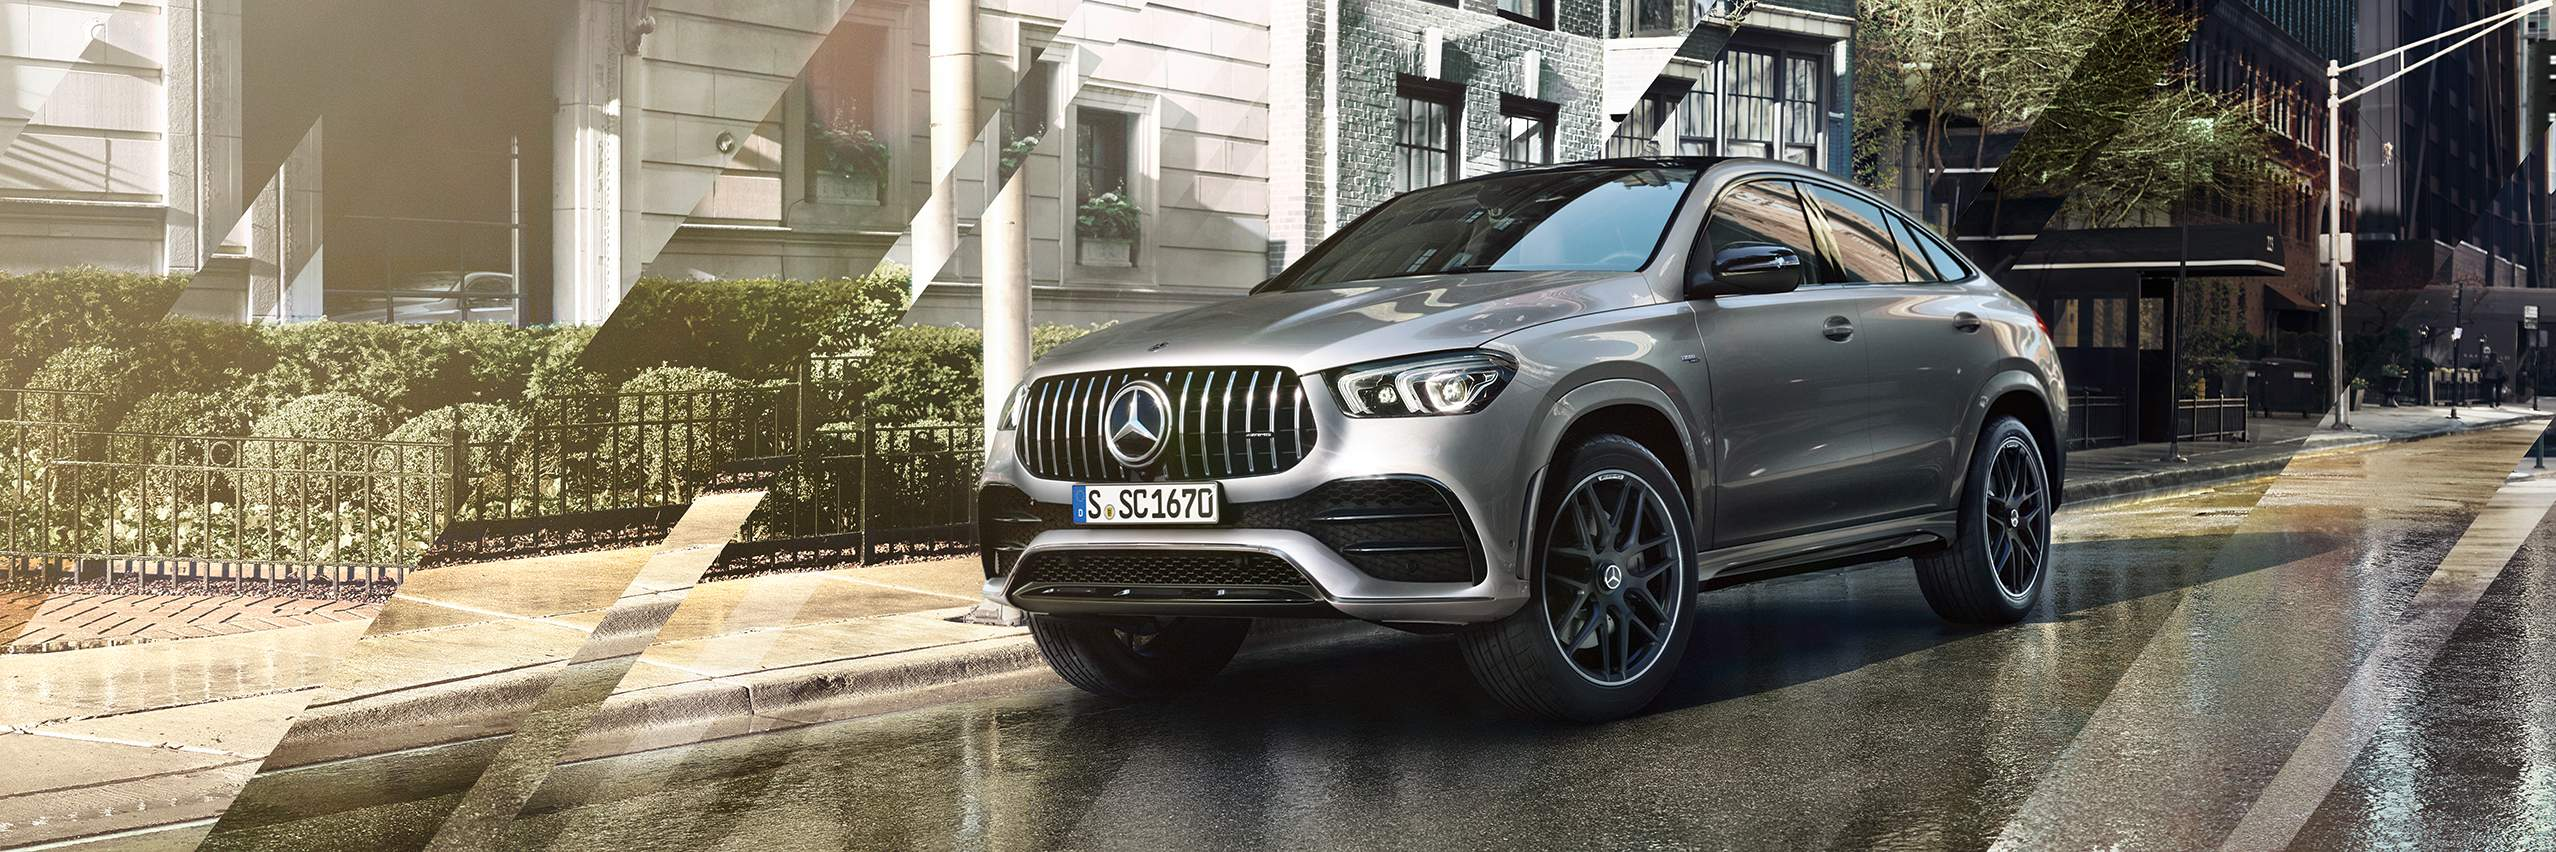 CAR-Avenue-Mercedes-AMG-GLE-Coupe-SUV-07